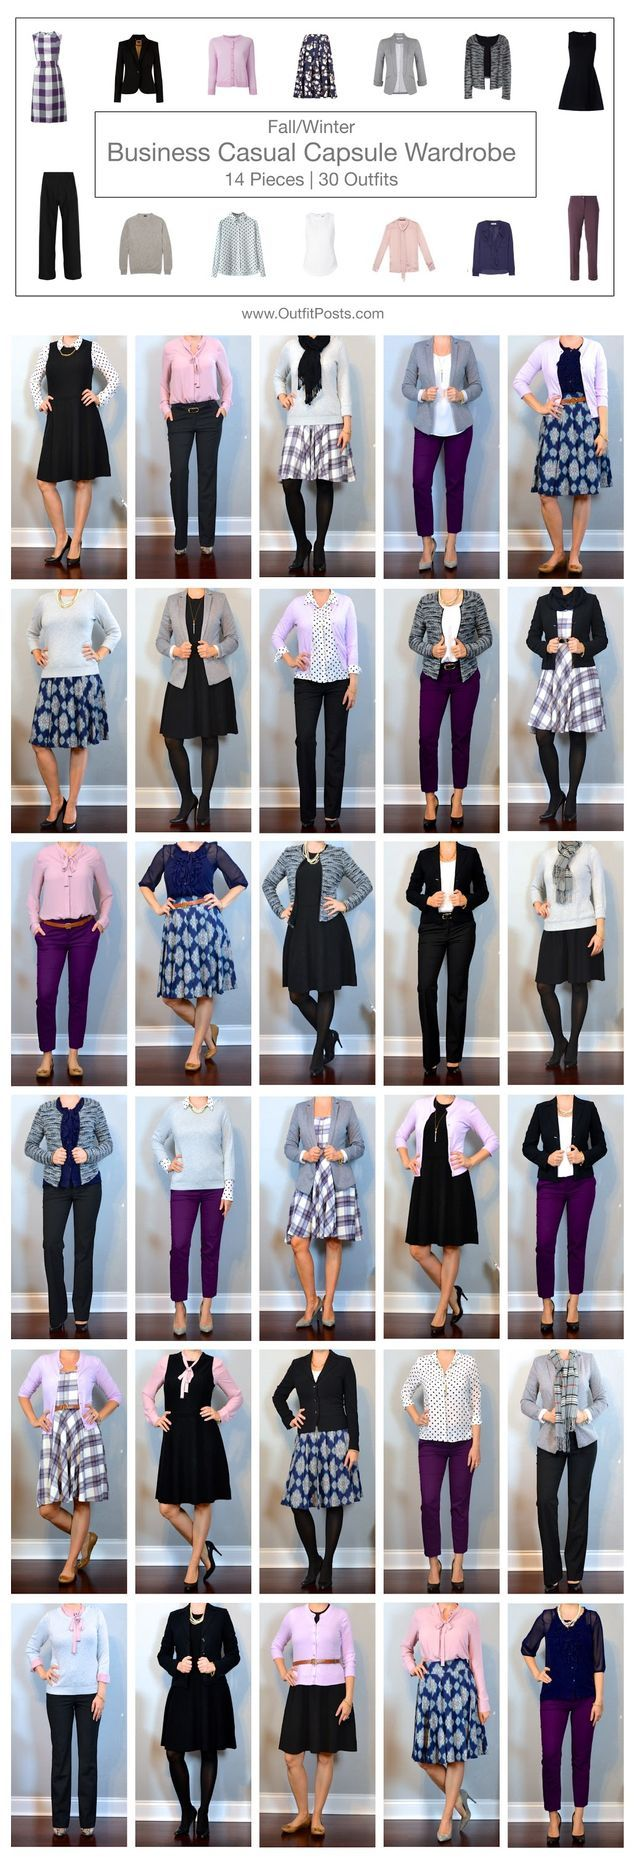 """8/8 - When I find myself starting to feel like I have tons of clothing but nothing to wear - I use a capsule wardrobe trick to help me get more creative with what I already own. My """"trick"""" is that I p"""